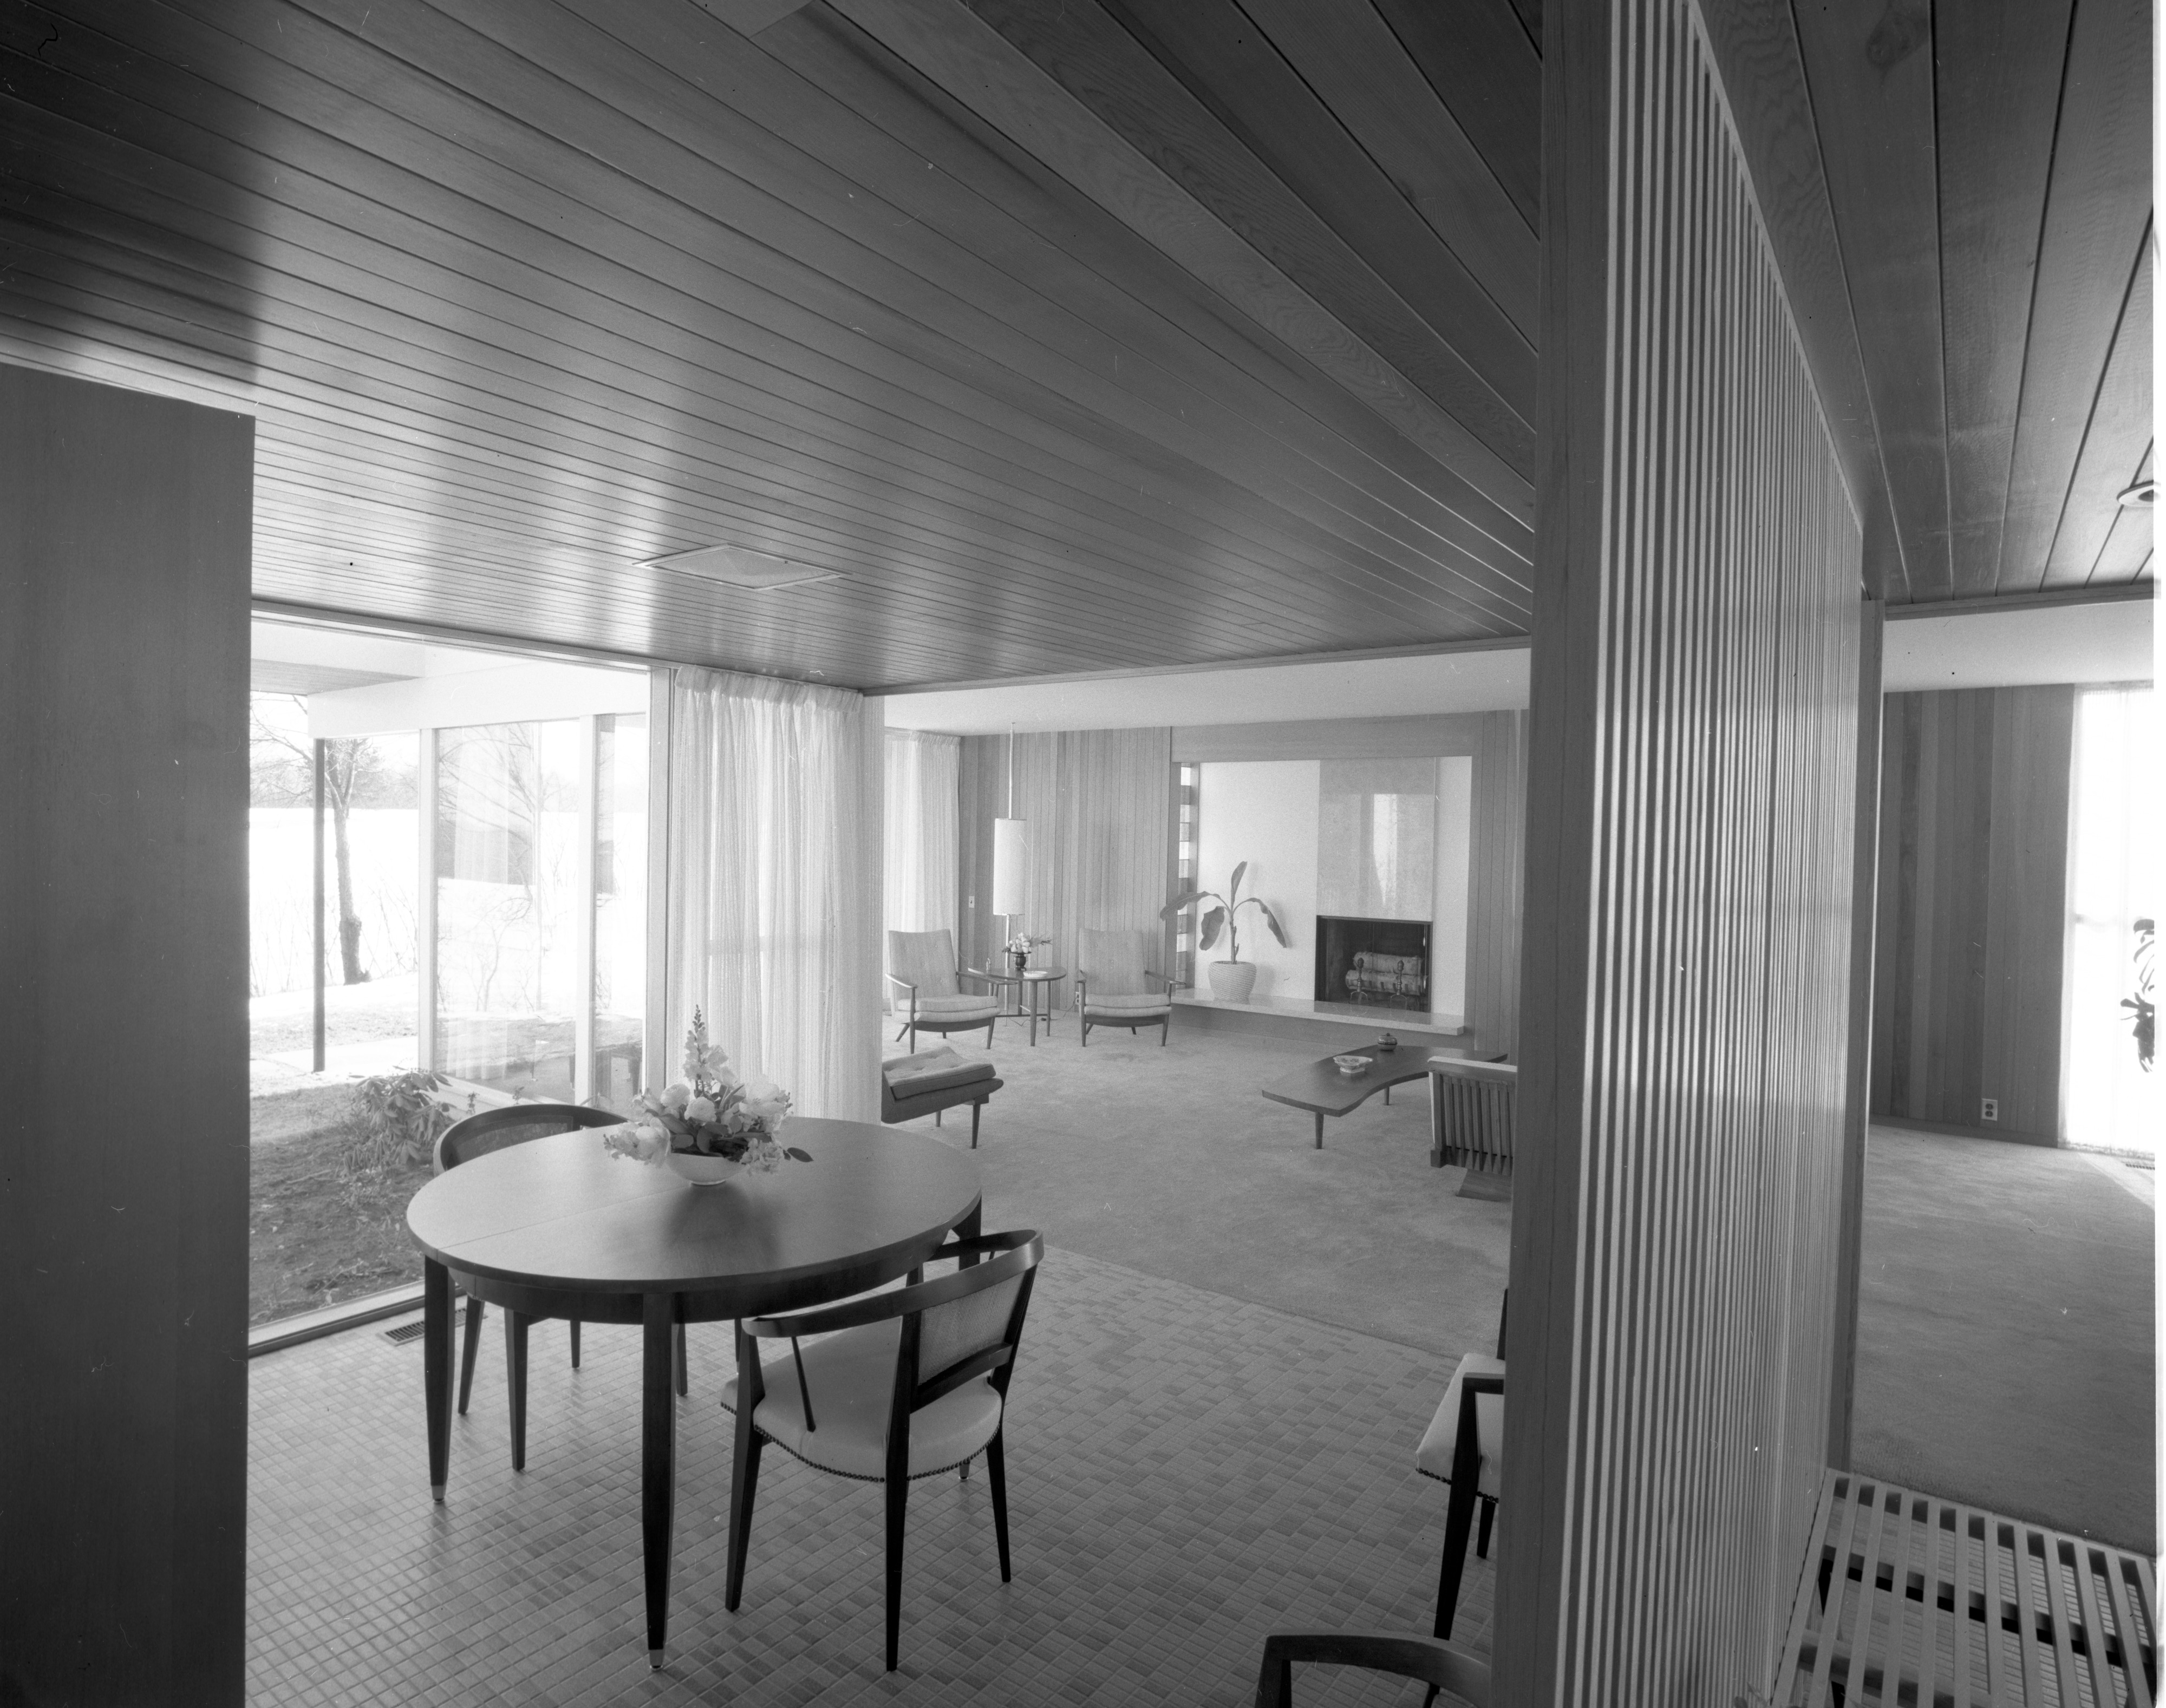 Dining Area of Botch Home on Chestnut Rd , March 1959 image